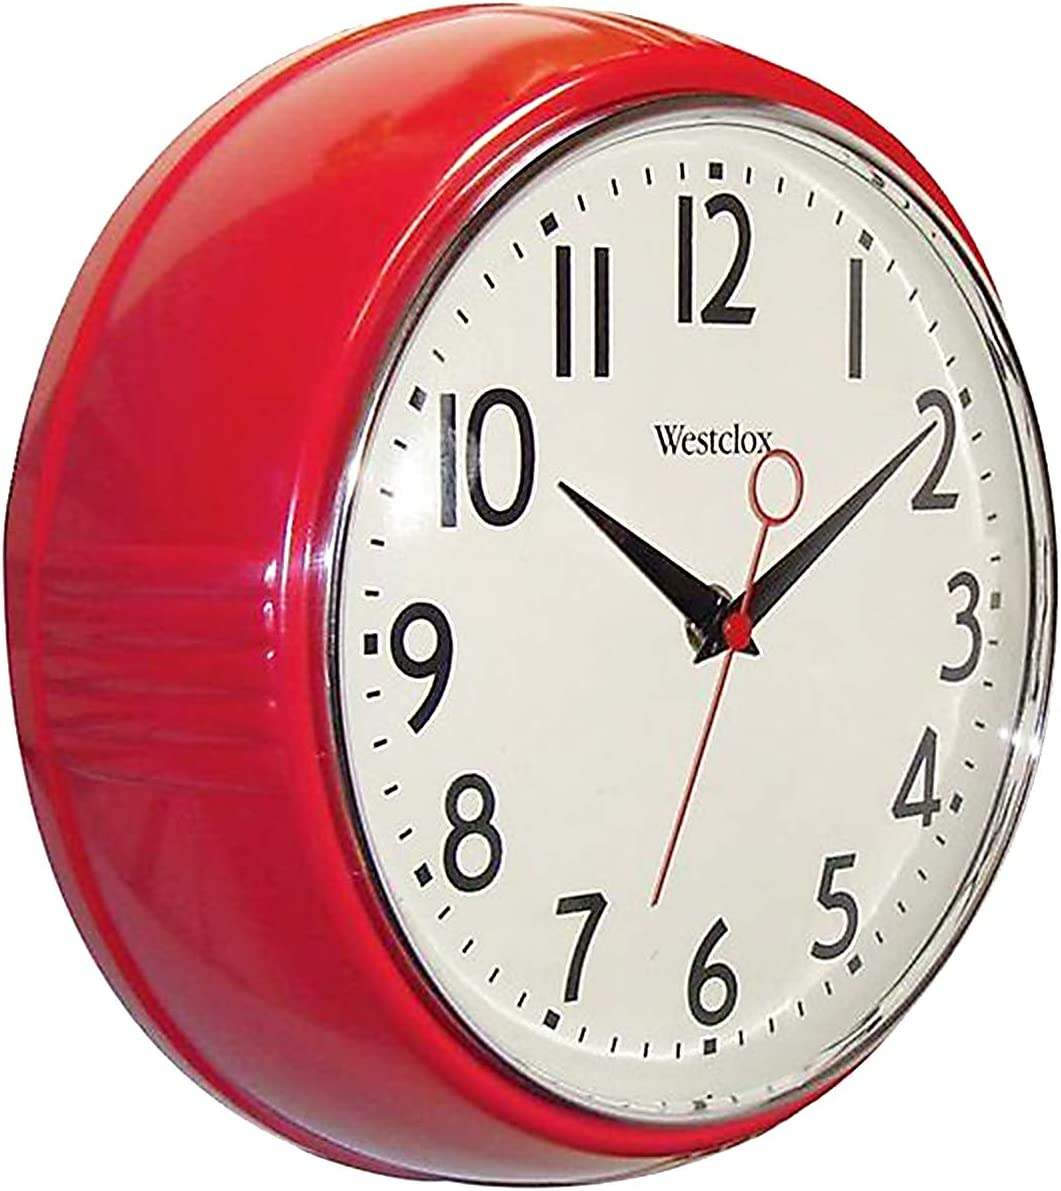 Westclox 32042R 9.5-Inch Retro 1950 Kitchen Wall Clock